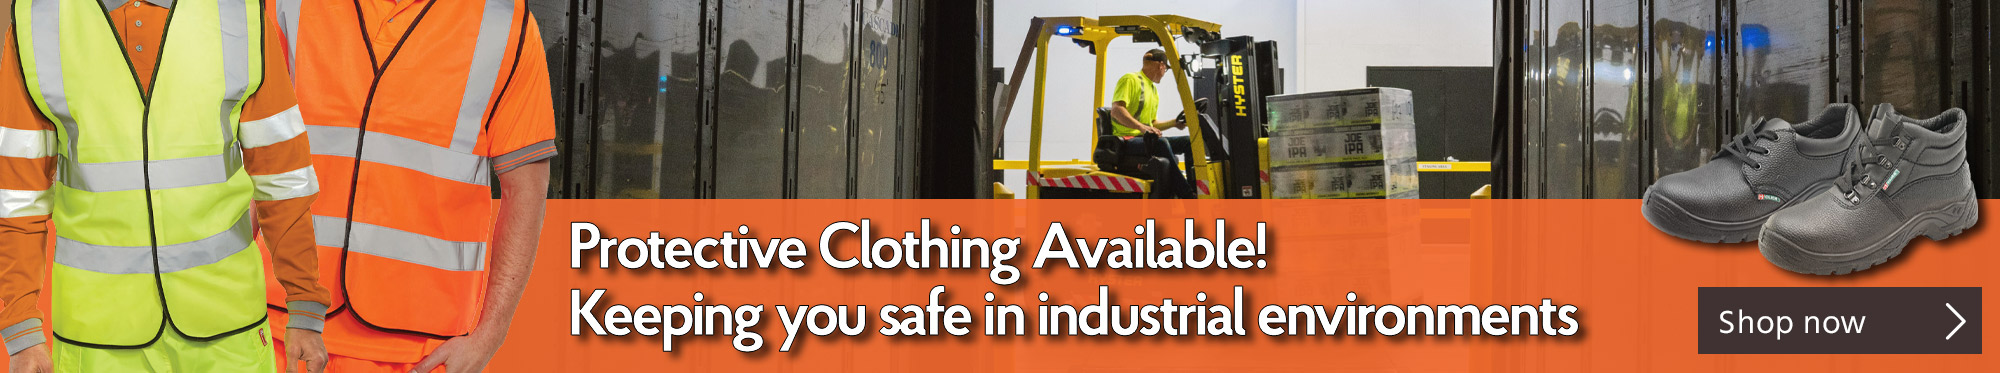 Keeping You Safe in Industrial Environments